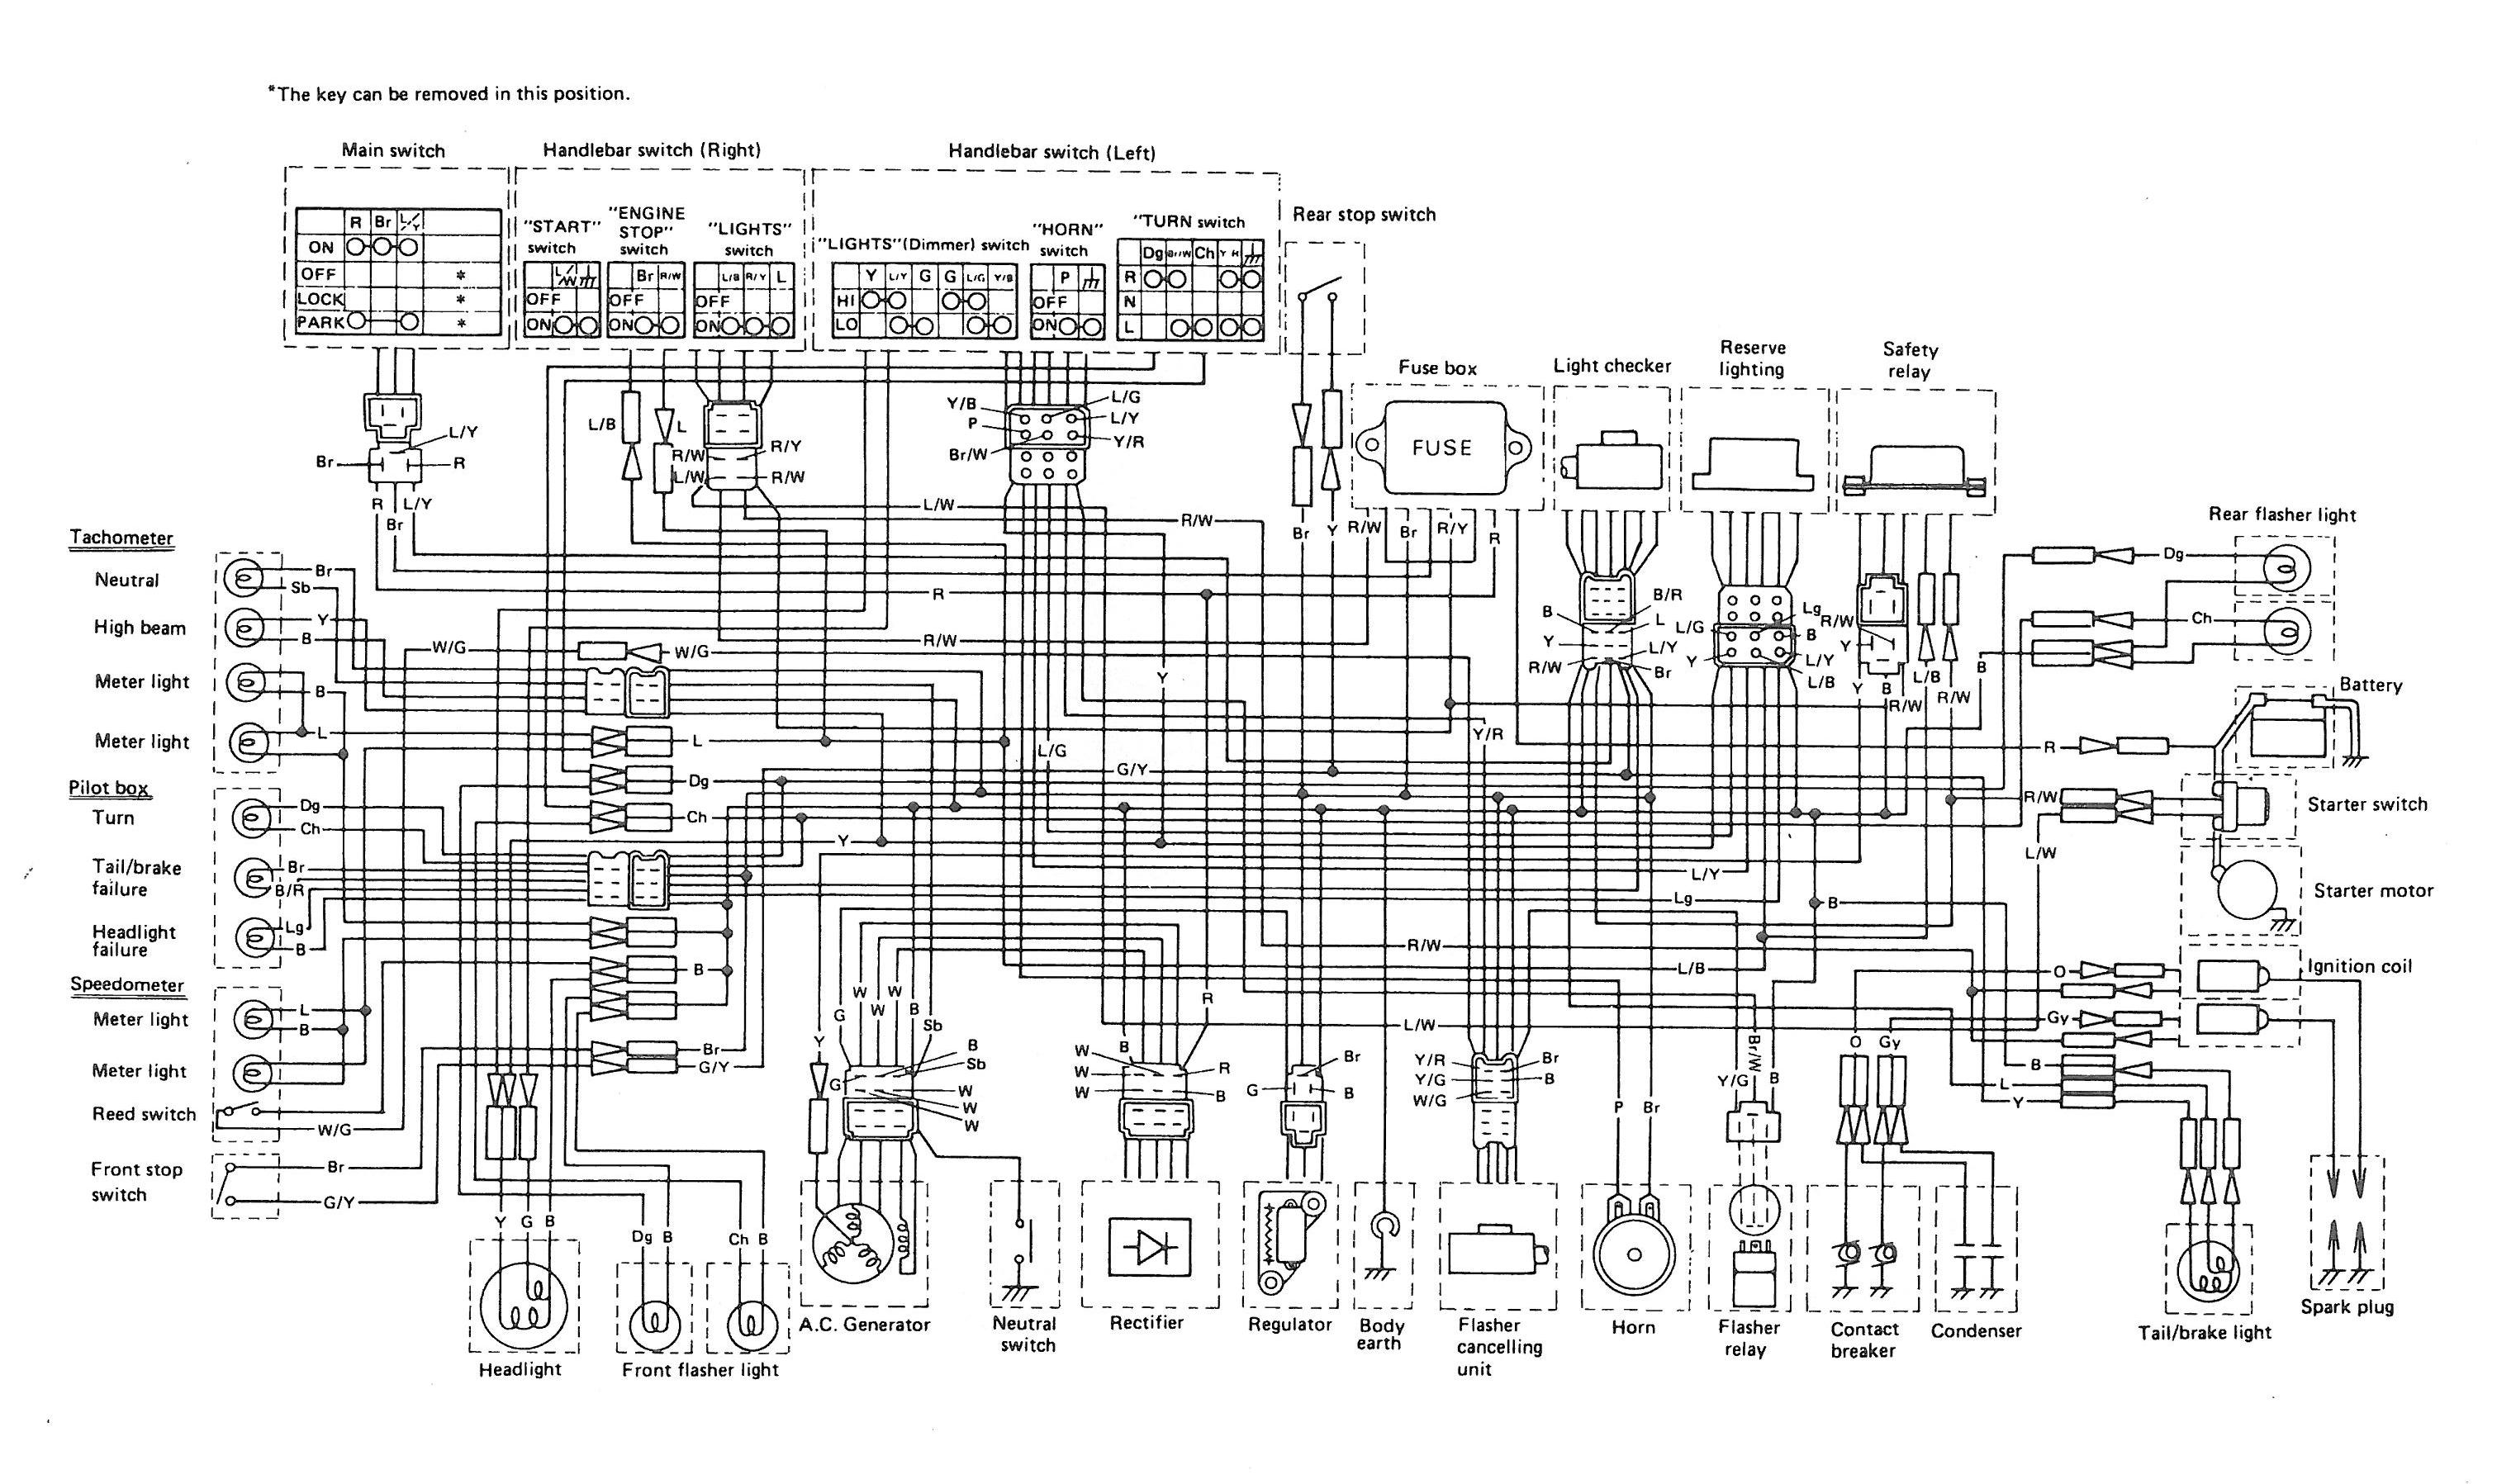 2h9 1979 Yamaha Xs1100 Wiring Diagram European